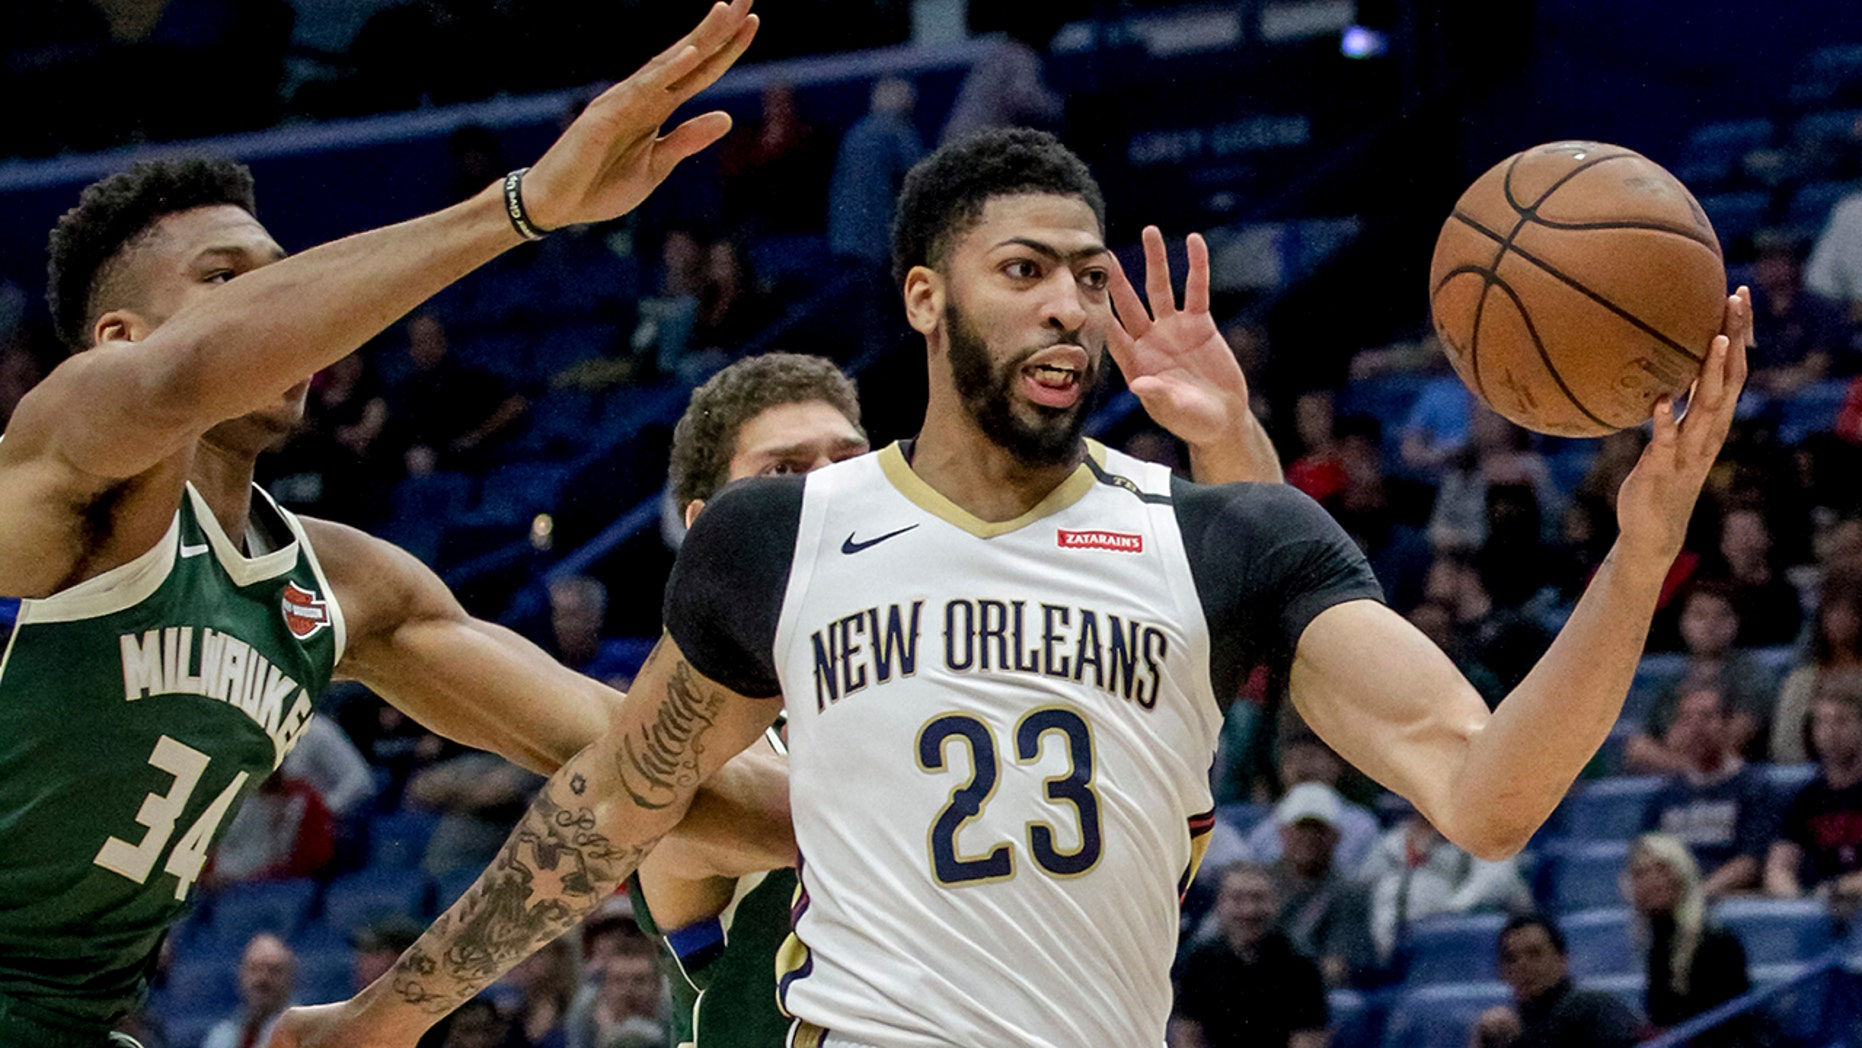 Pelicans basketball operations chief David Griffin says the timing of next week's NBA draft won't necessarily raise urgency to trade disgruntled six-time All-Star Anthony Davis. The Pelicans have the first overall pick in the June 20 NBA draft and likely could acquire more high picks by dealing Davis by then.(AP Photo/Scott Threlkeld, File)